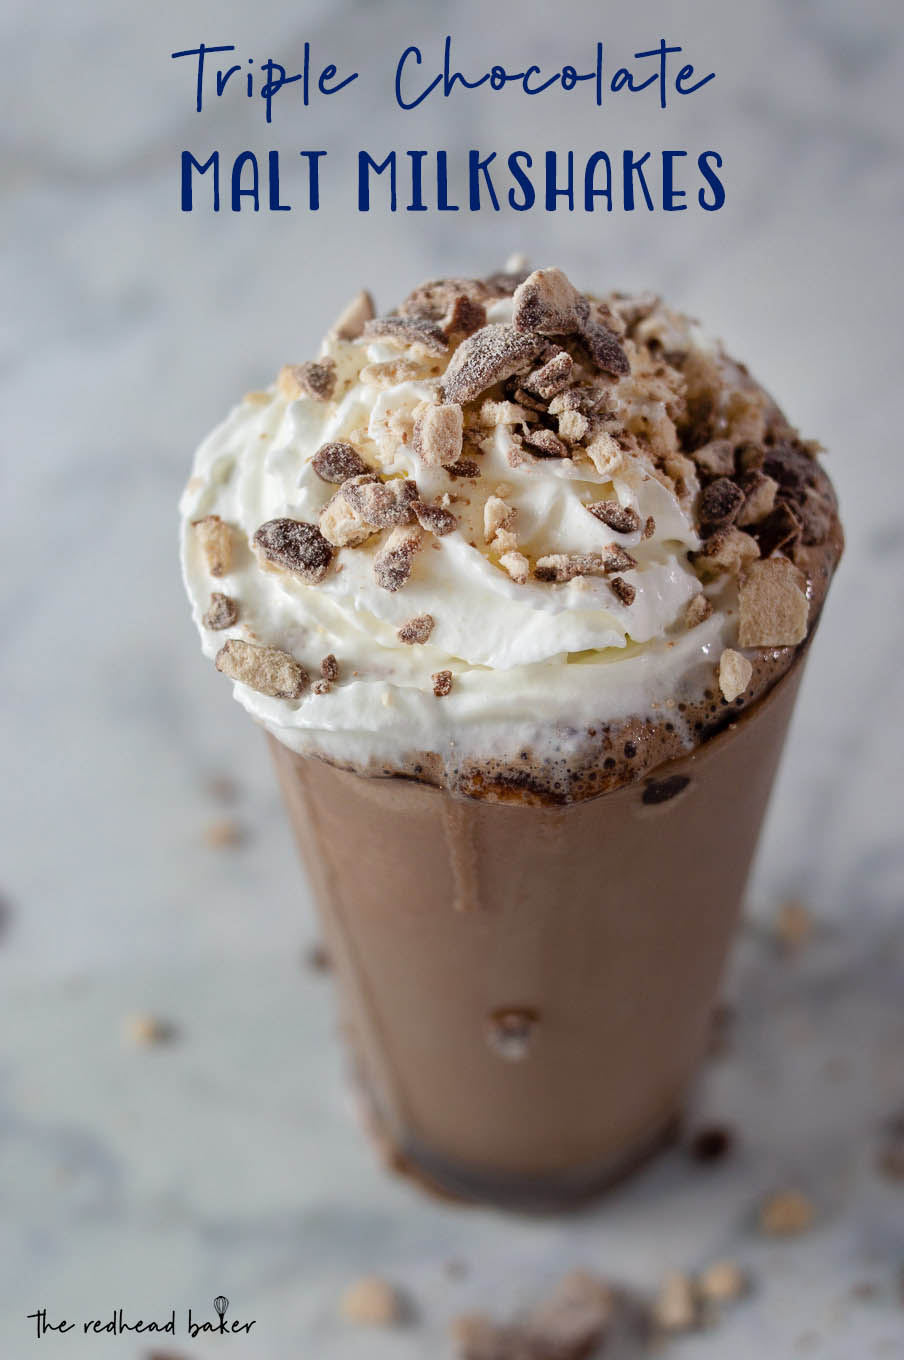 A triple chocolate malt milkshake garnished with whipped cream and crushed malted milk candies